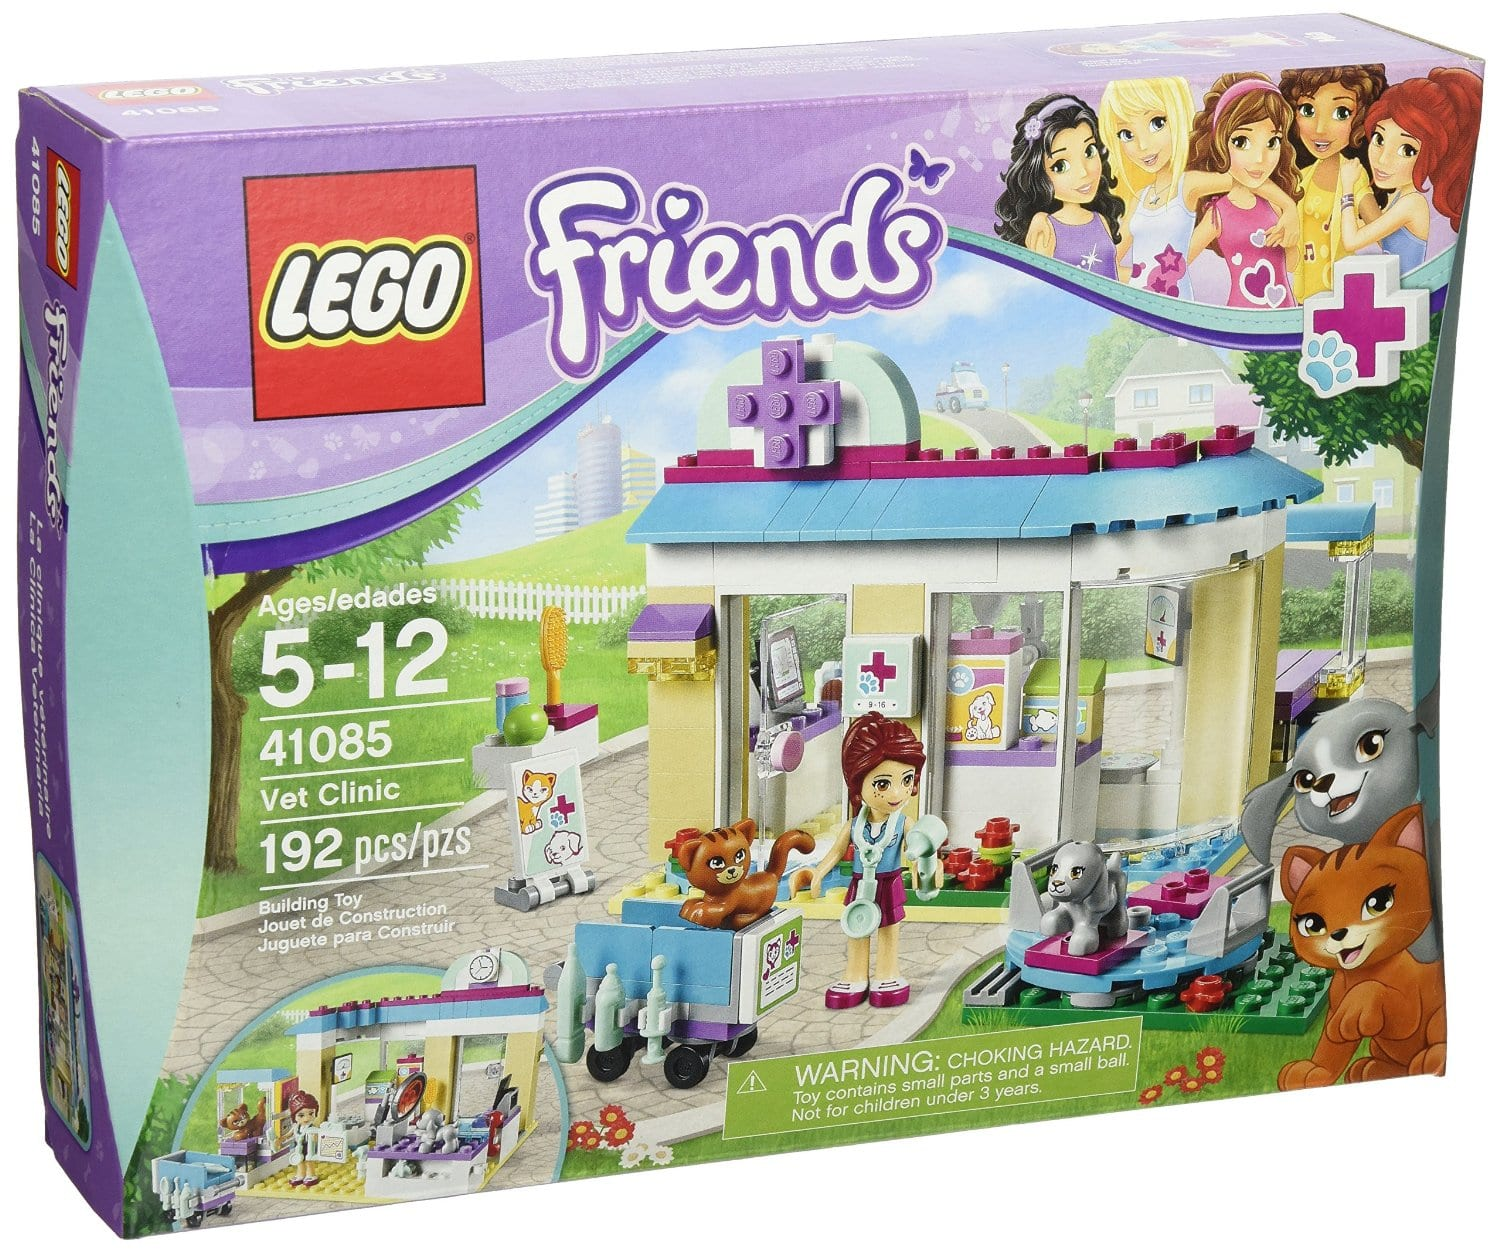 Christmas Toys For Christmas : Top reviews of hottest toys for girls as christmas gift